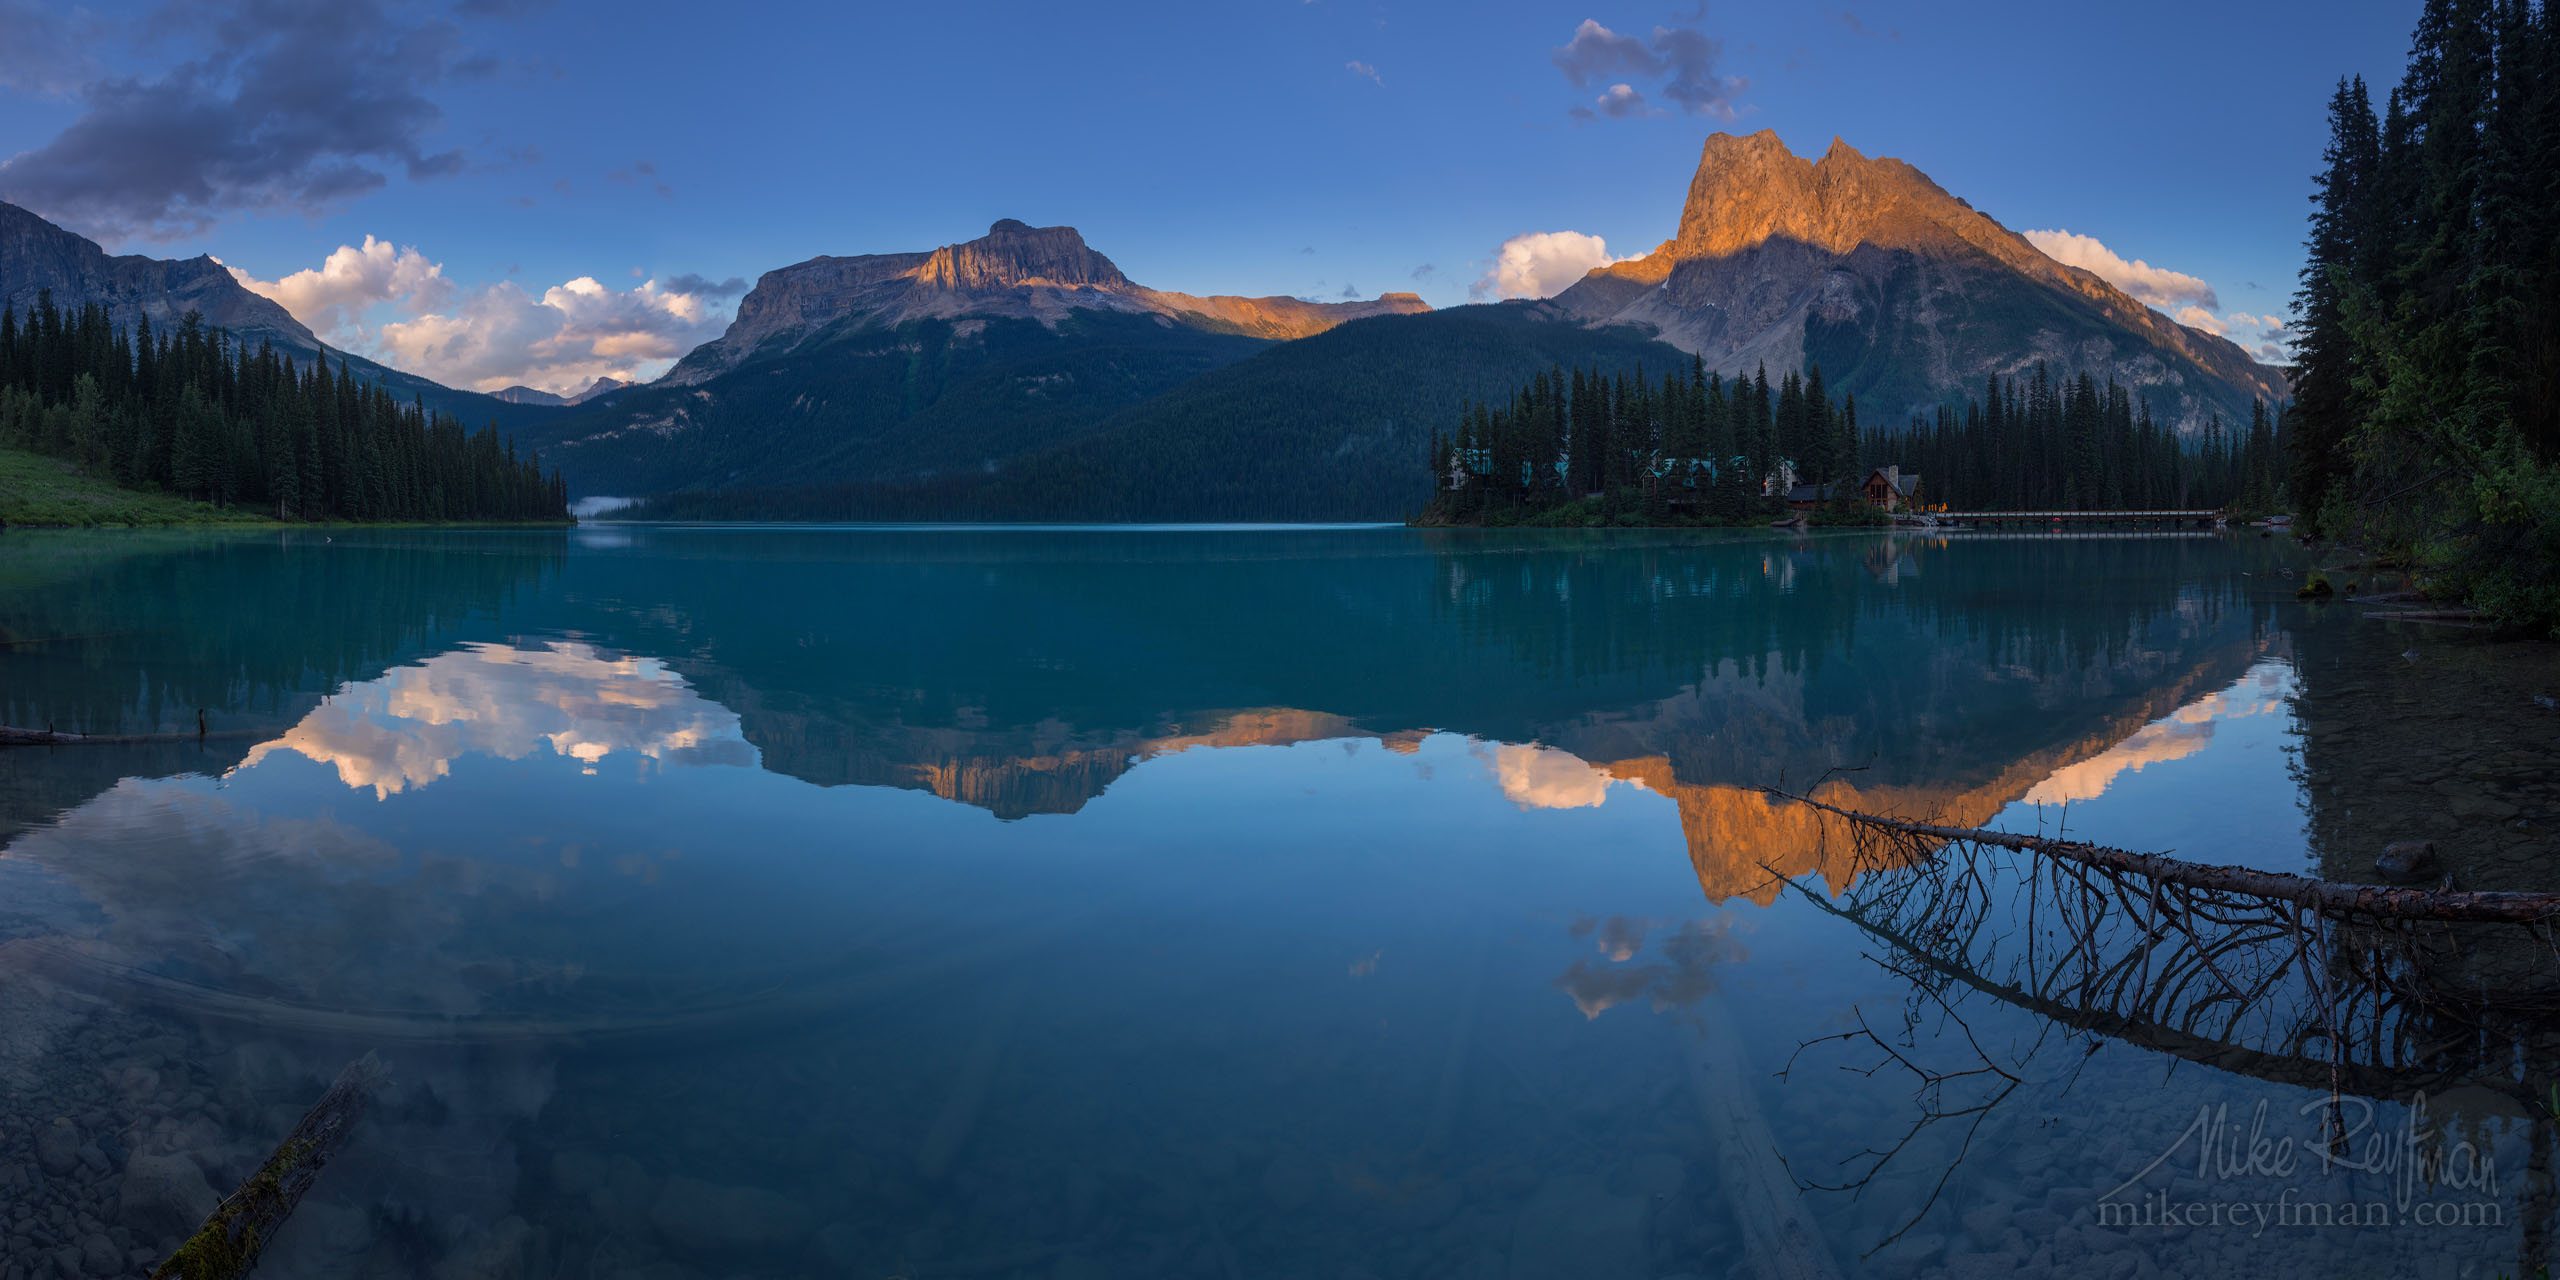 Emerald Evening. Emerald Lake. Yoho National Park, British Columbia, Canada P12-MRD1C7772-80 - Selected panoramic images with 2:1 aspect ratio - Mike Reyfman Photography